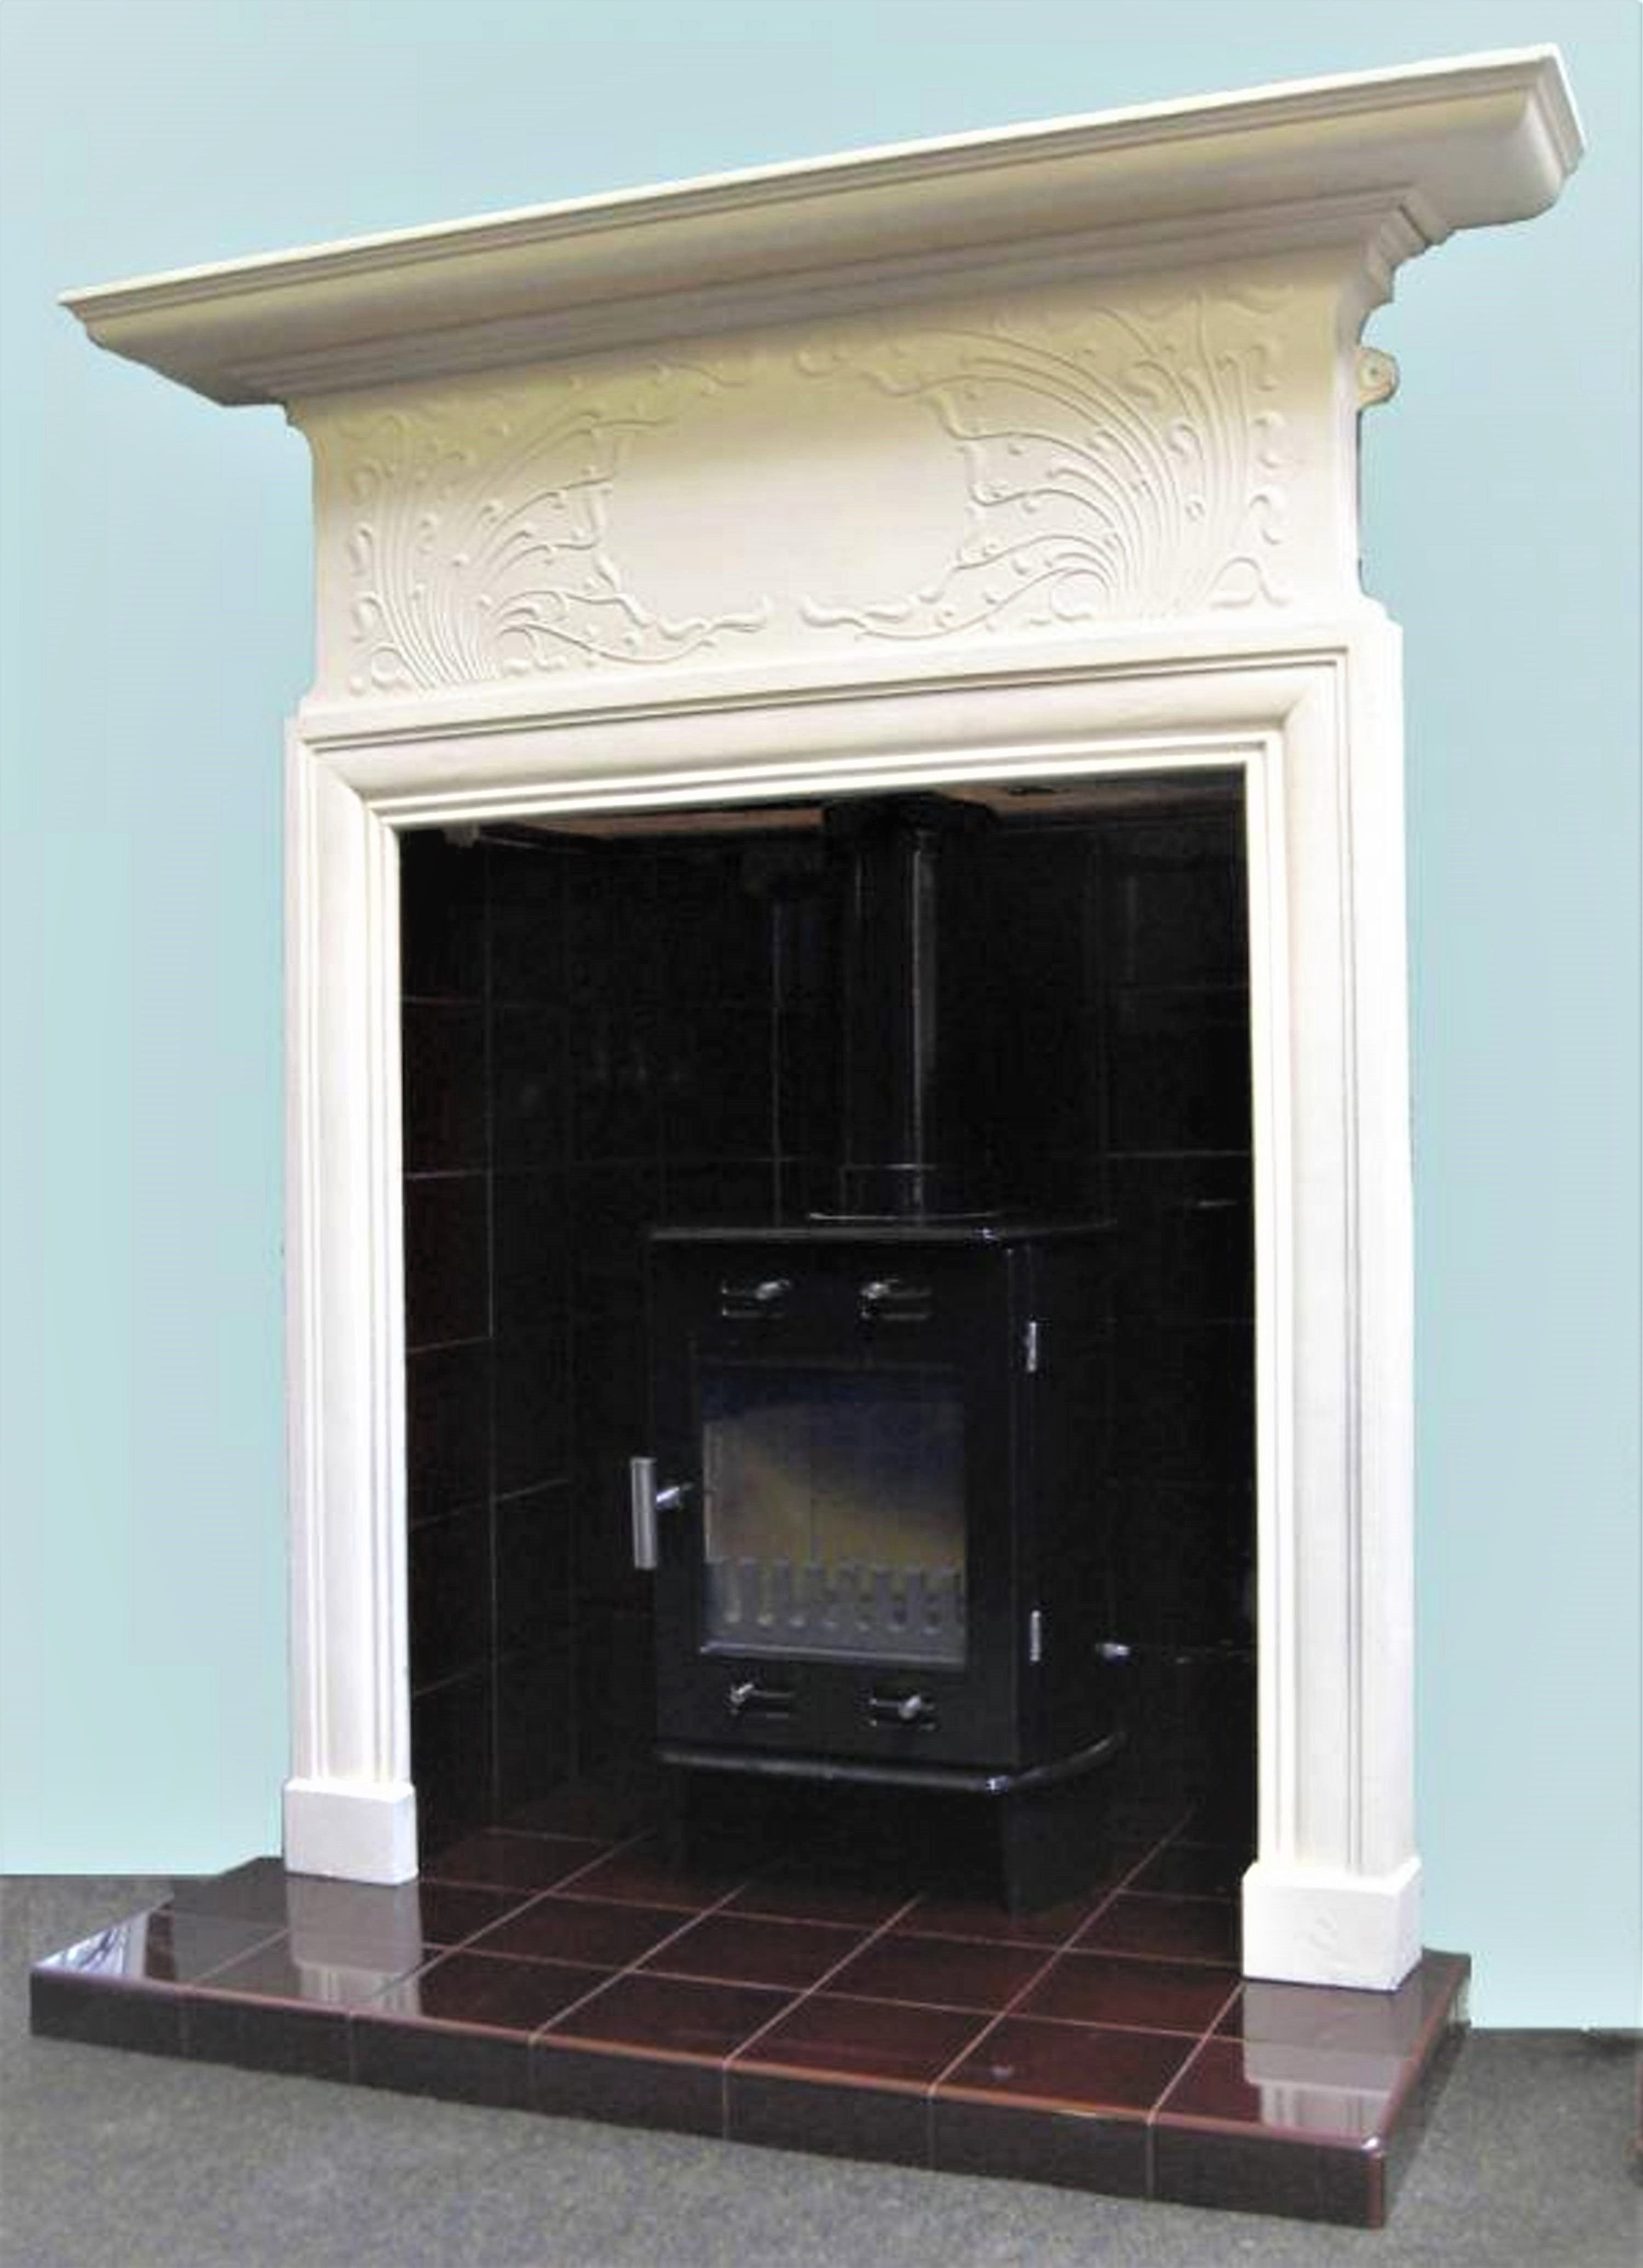 Antique Painted Cast Iron Surround With A Tiled Stove Chamber And Hearth Stove Multifuelstoves Log Antique Fireplace Surround Fireplace Antique Fireplace